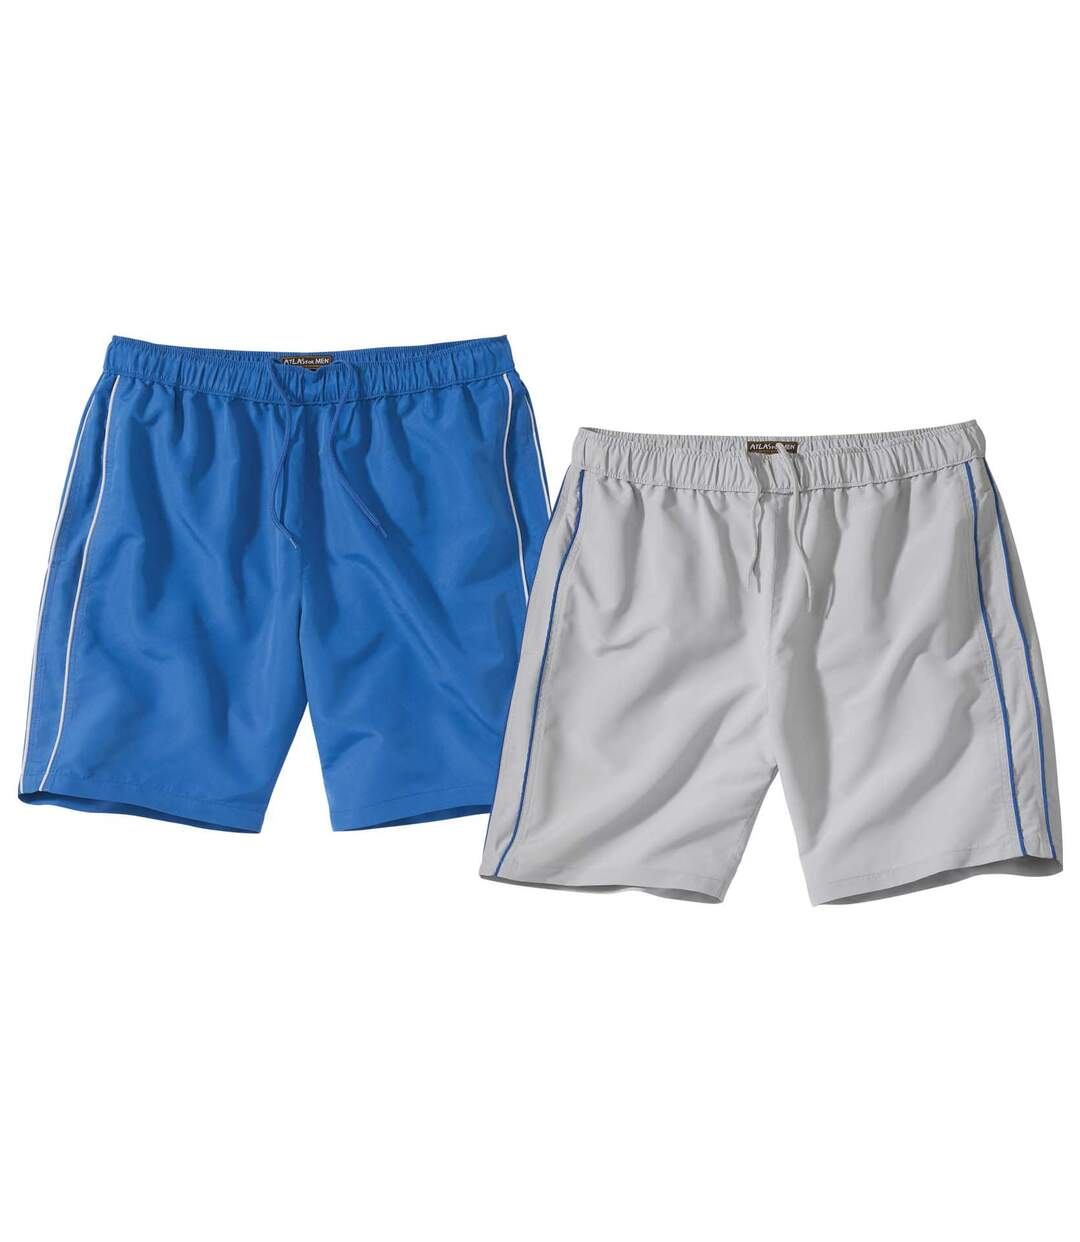 Pack of 2 Men's Microfibre Beach Shorts - Blue Grey